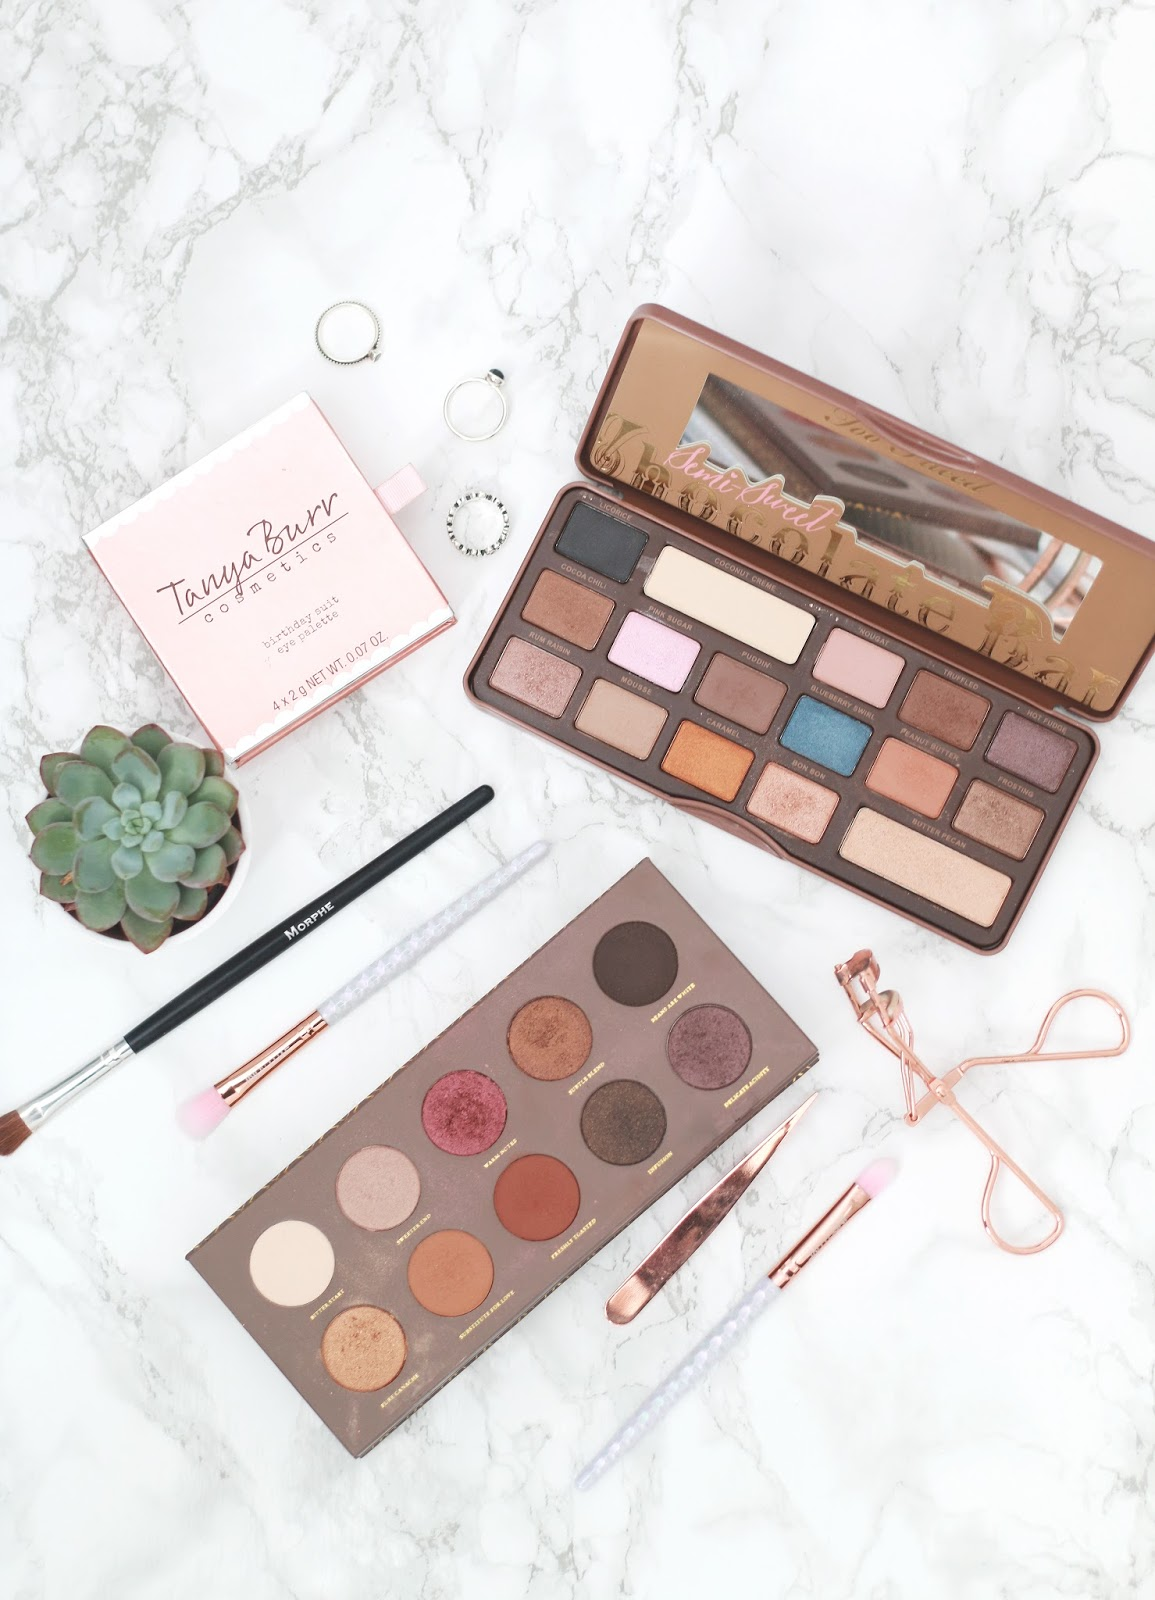 forever september, beauty blogger, lifestyle blogger, fashion blogger, eyeshadow, eyeshadow palettes, eyeshadow looks, looks for blue eyes, zoeva, too faced, tanya burr, neutral palette